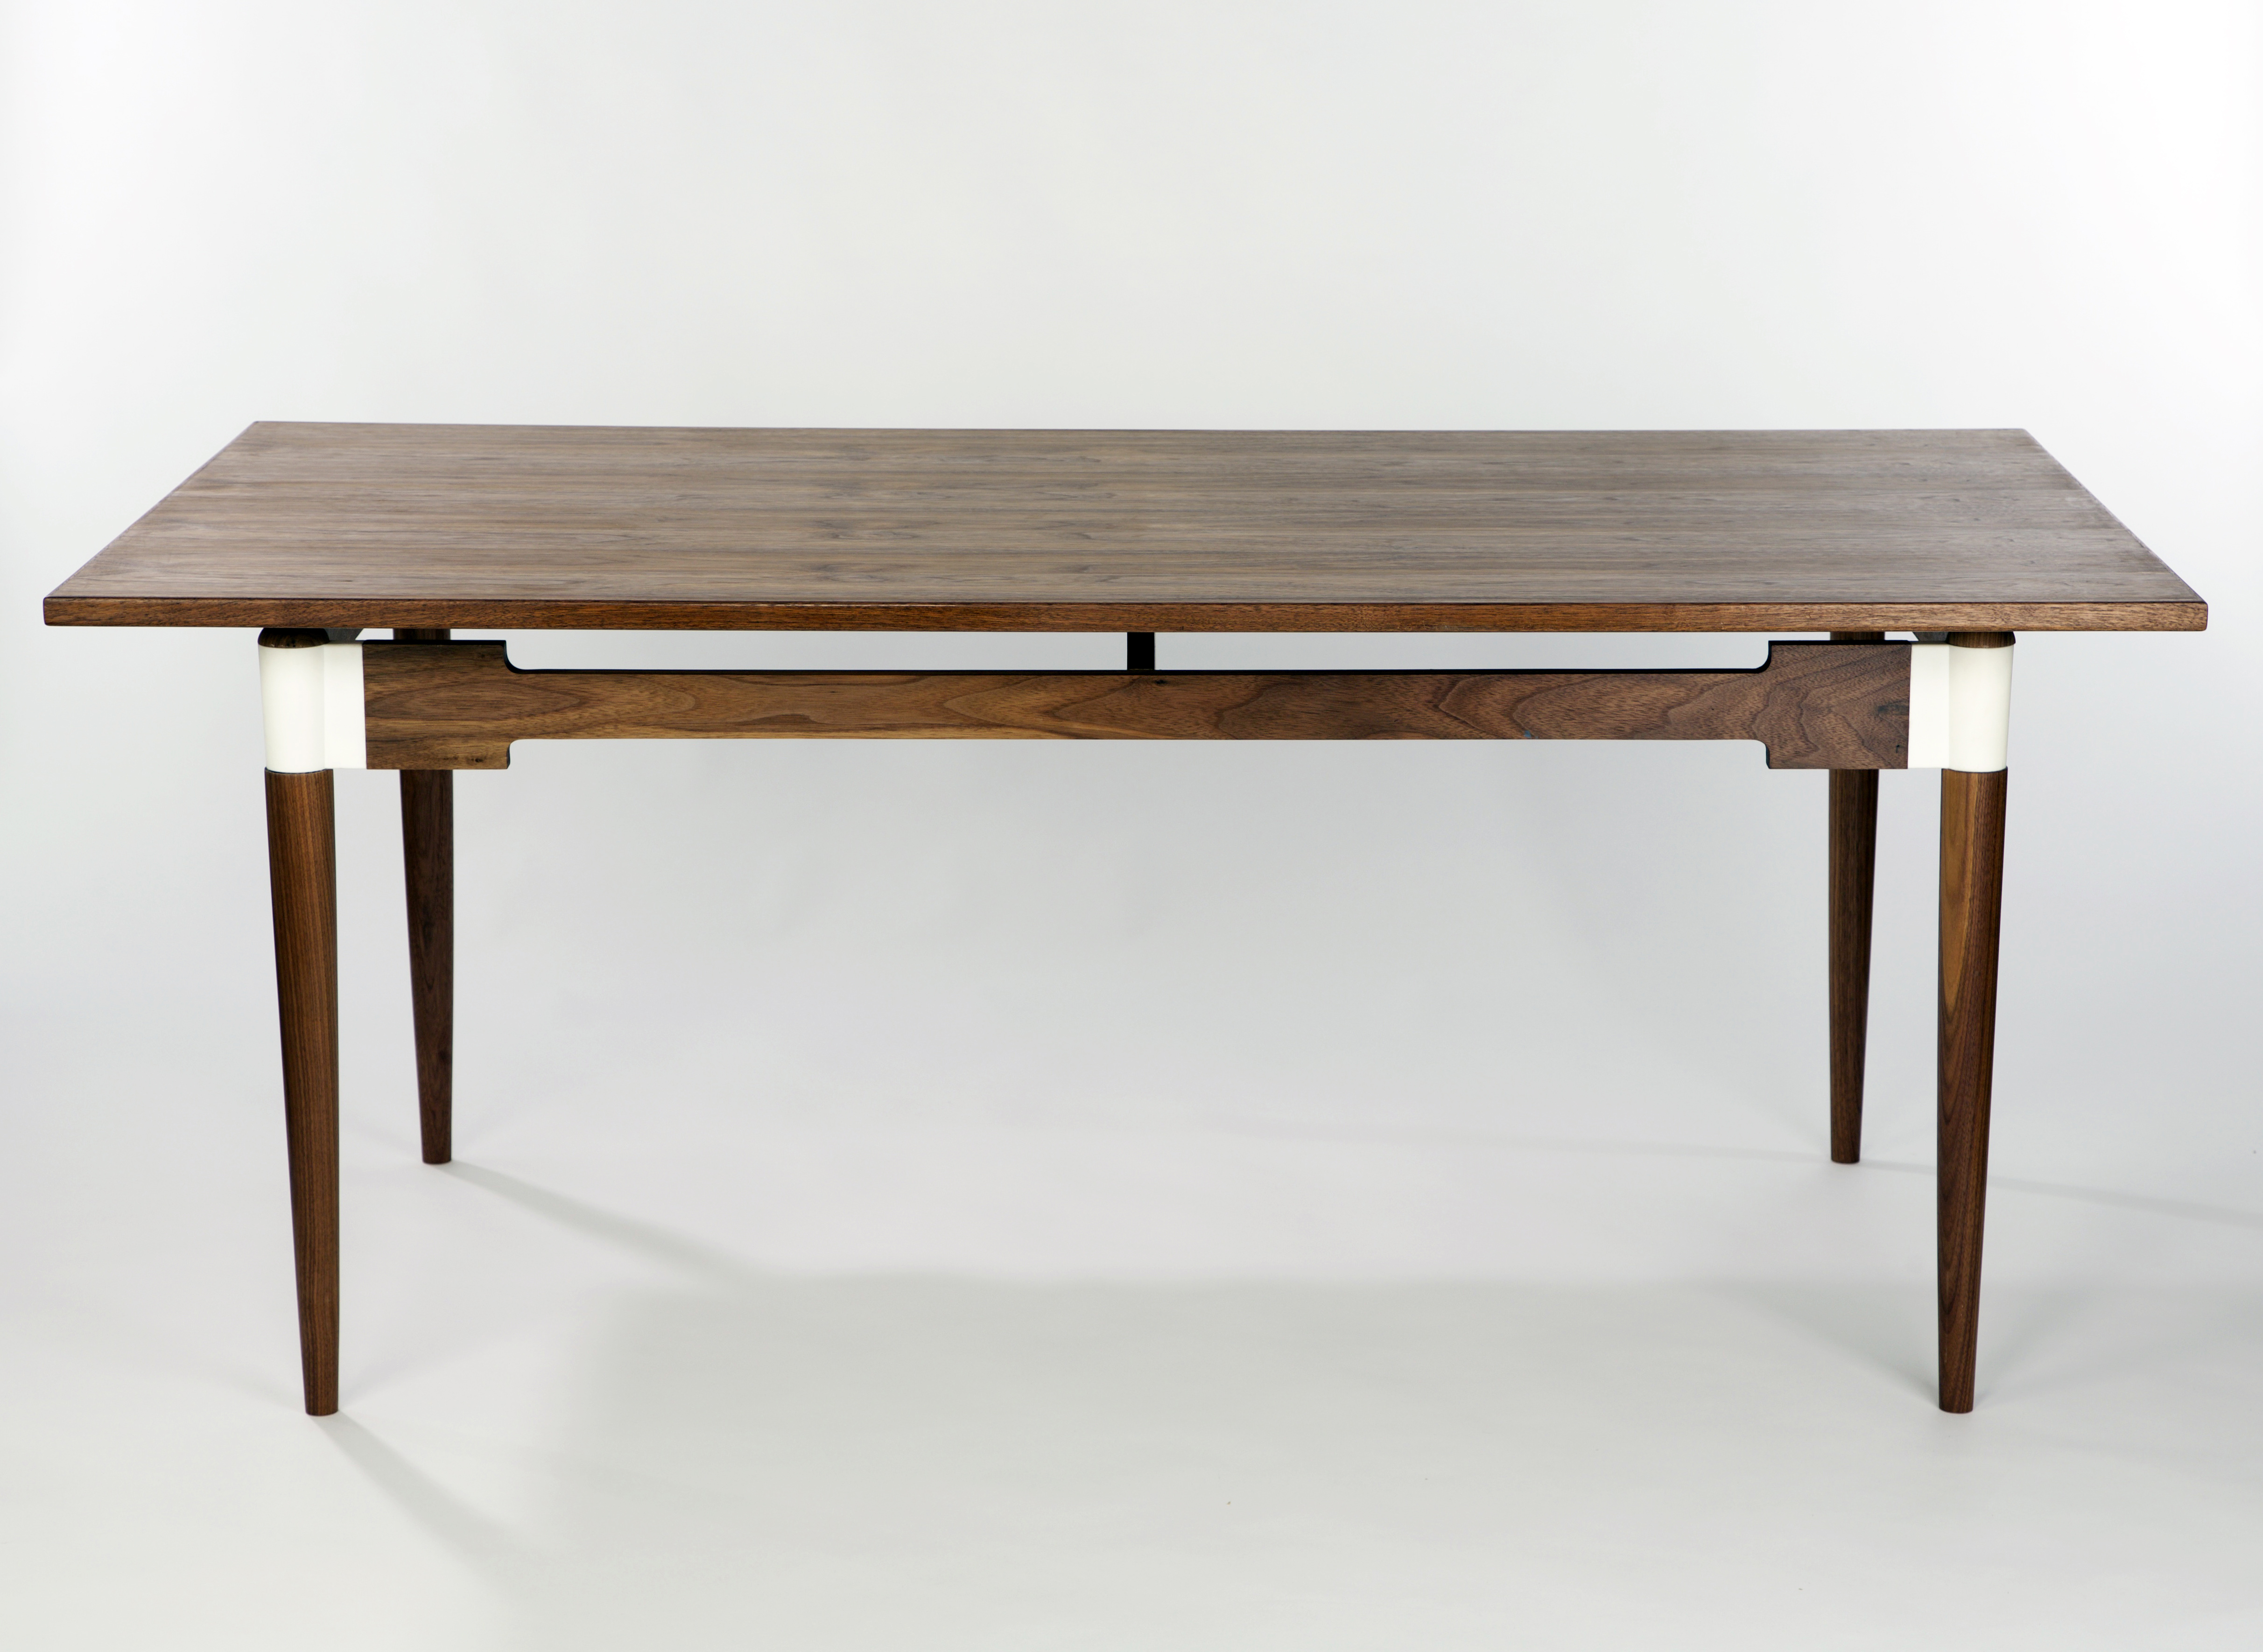 'Saul' table in 3D printed polyamide & walnut